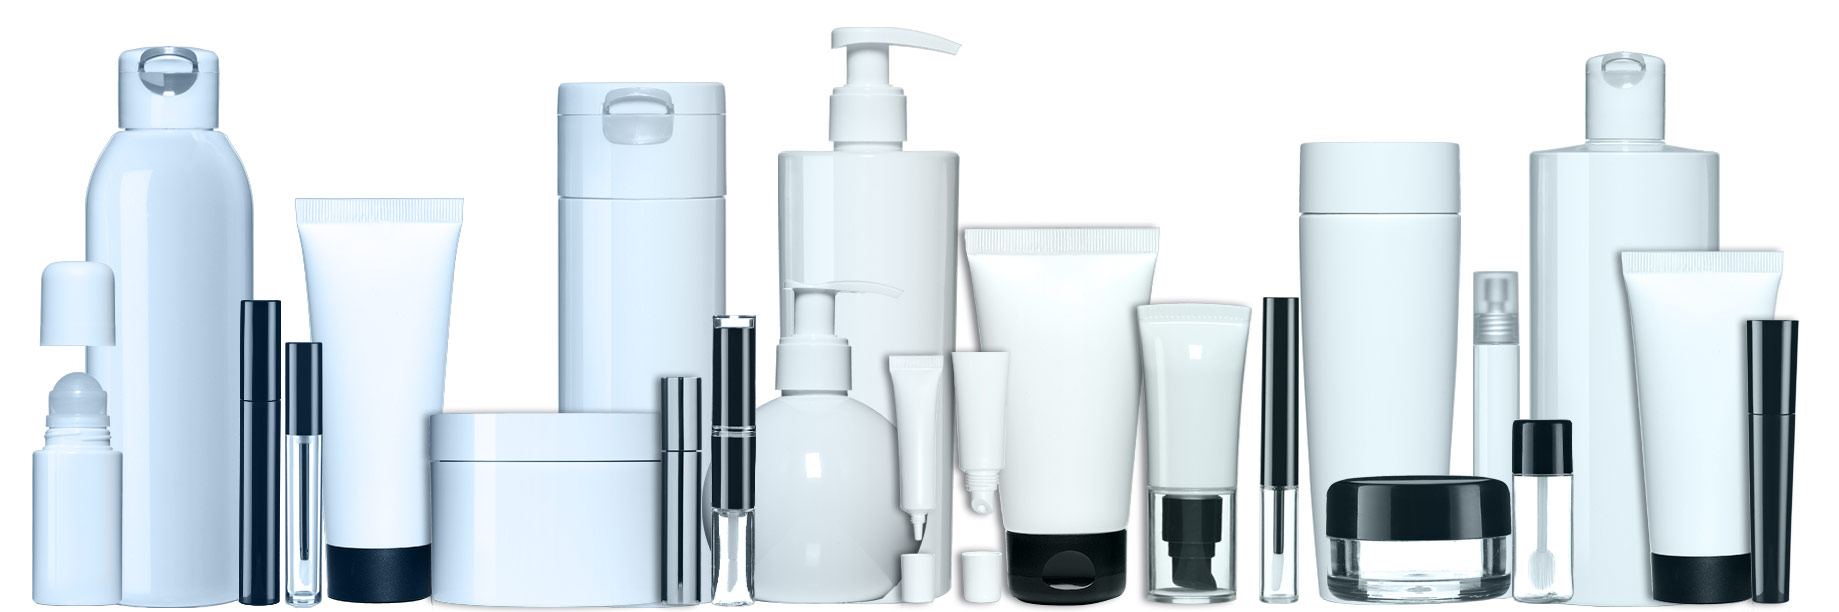 Pibiplast - complete range packaging skincare makeup